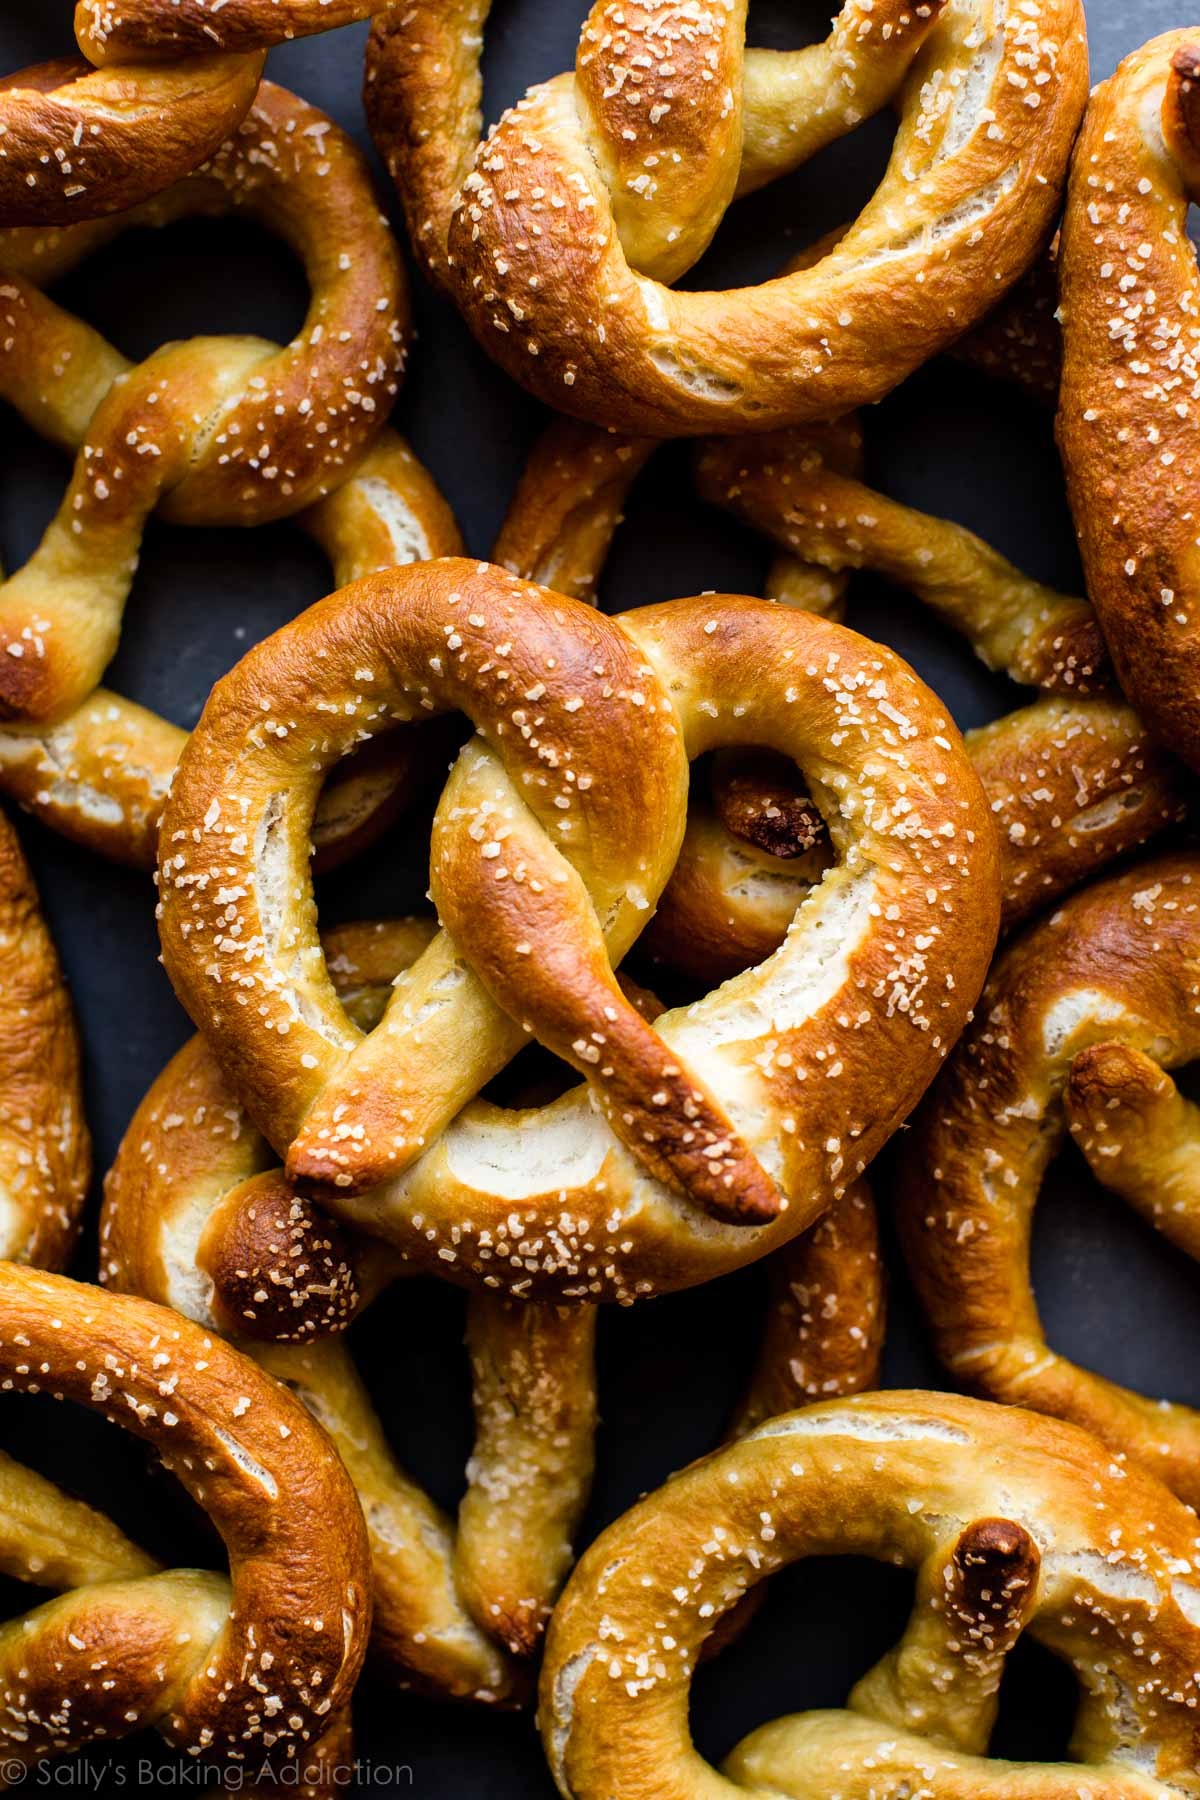 Fall Brithday Wallpaper Easy Homemade Soft Pretzels Video Sallys Baking Addiction